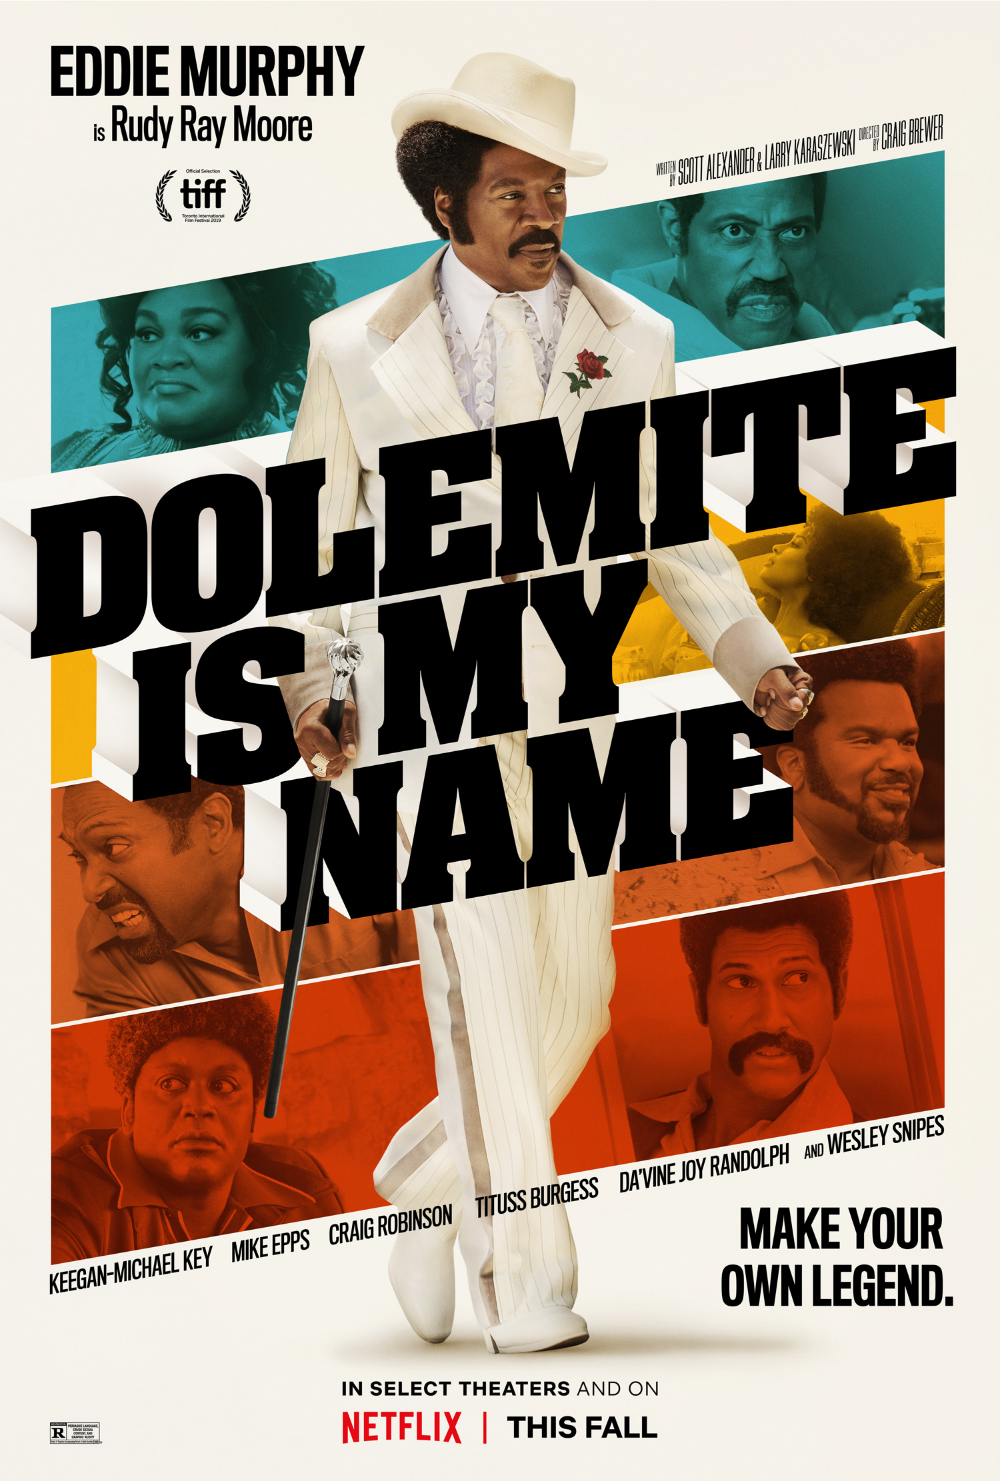 Dolemite Is My Name Rudy ray moore, Eddie murphy, Wesley